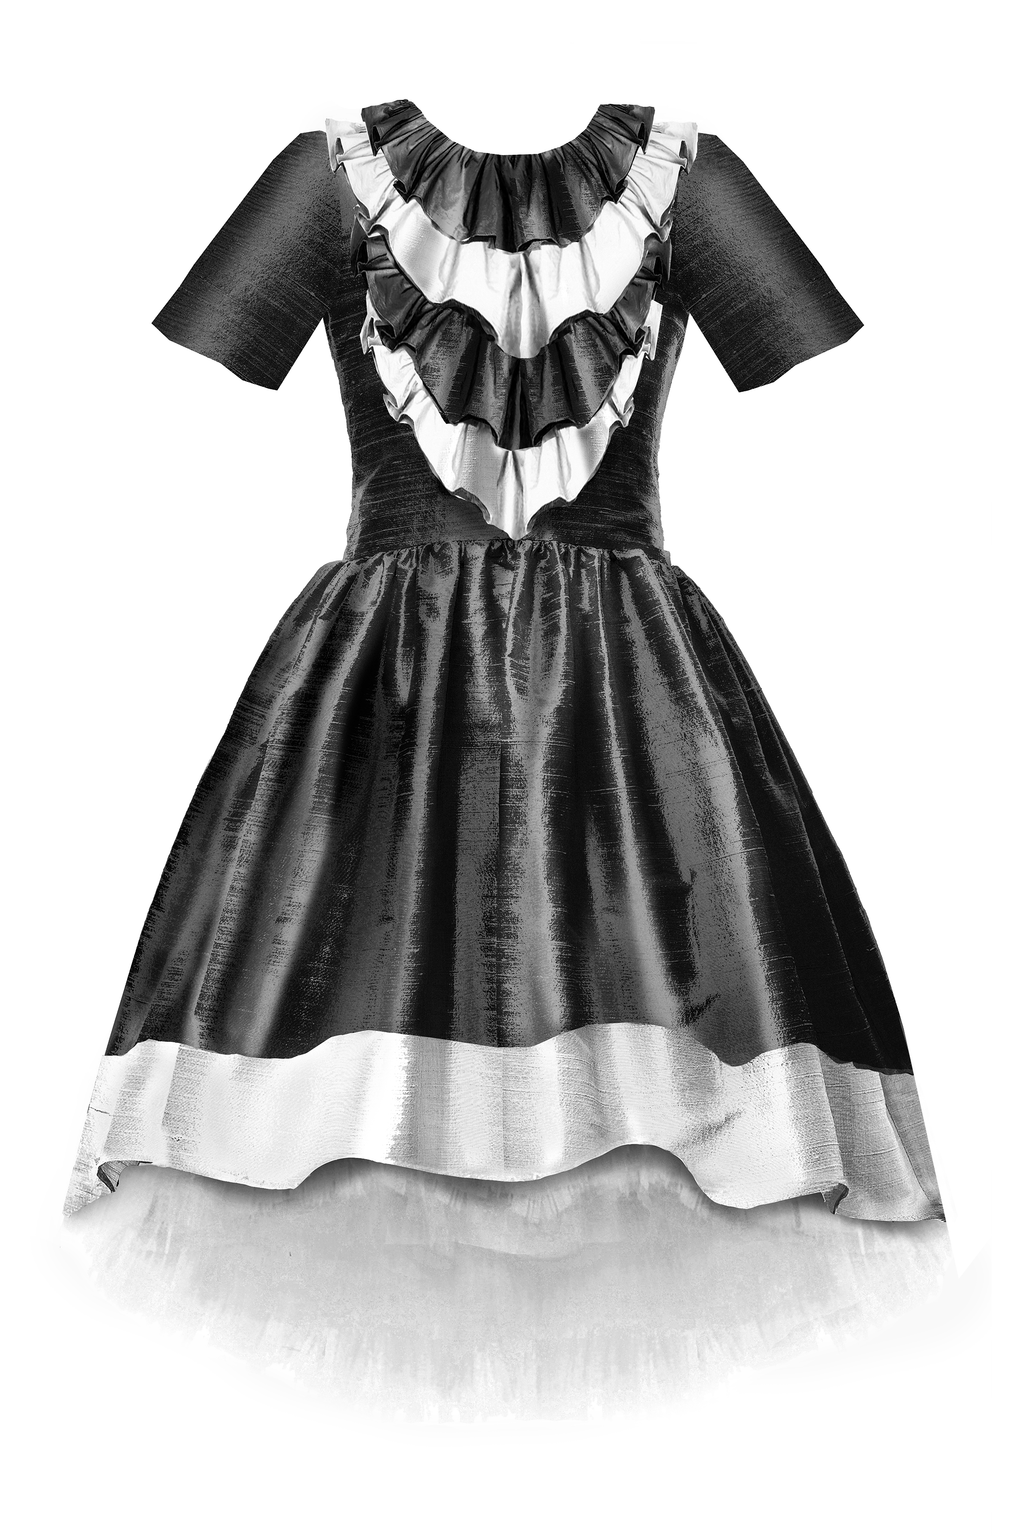 Belle Black & Off White Raw Silk High-Low Girls Dress with Ruffles - LAZY FRANCIS - Shop in store at 406 Kings Road, Chelsea, London or shop online at www.lazyfrancis.com